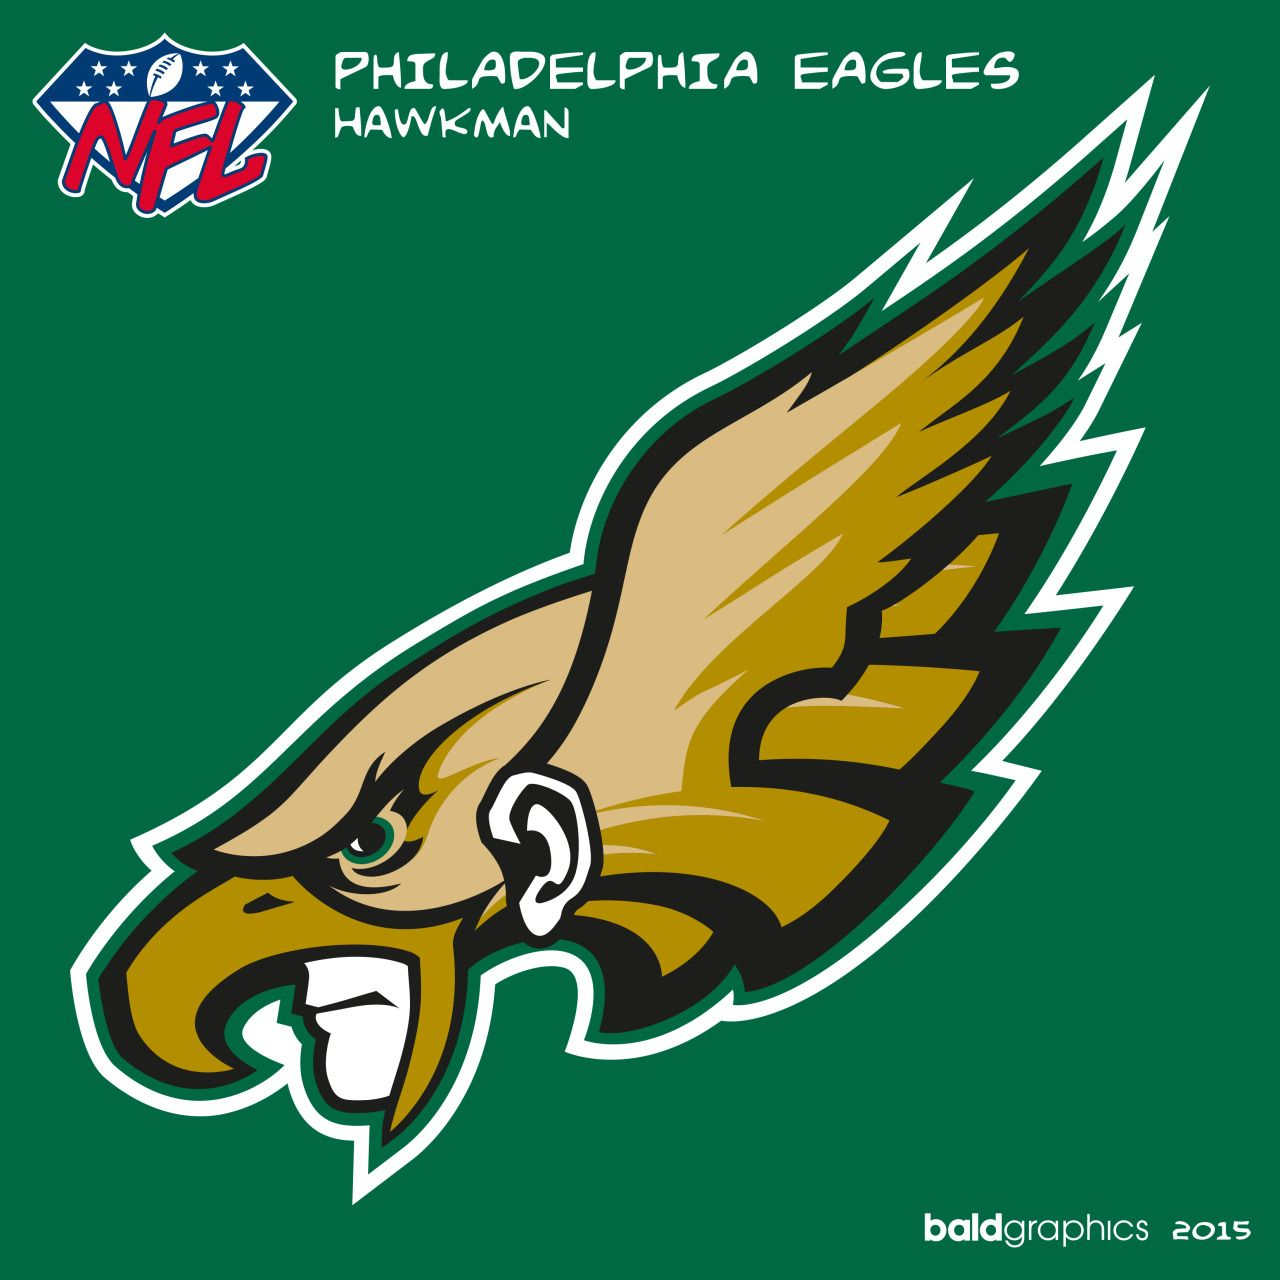 Pin by Danal on Comic books and sports mash Nfl teams